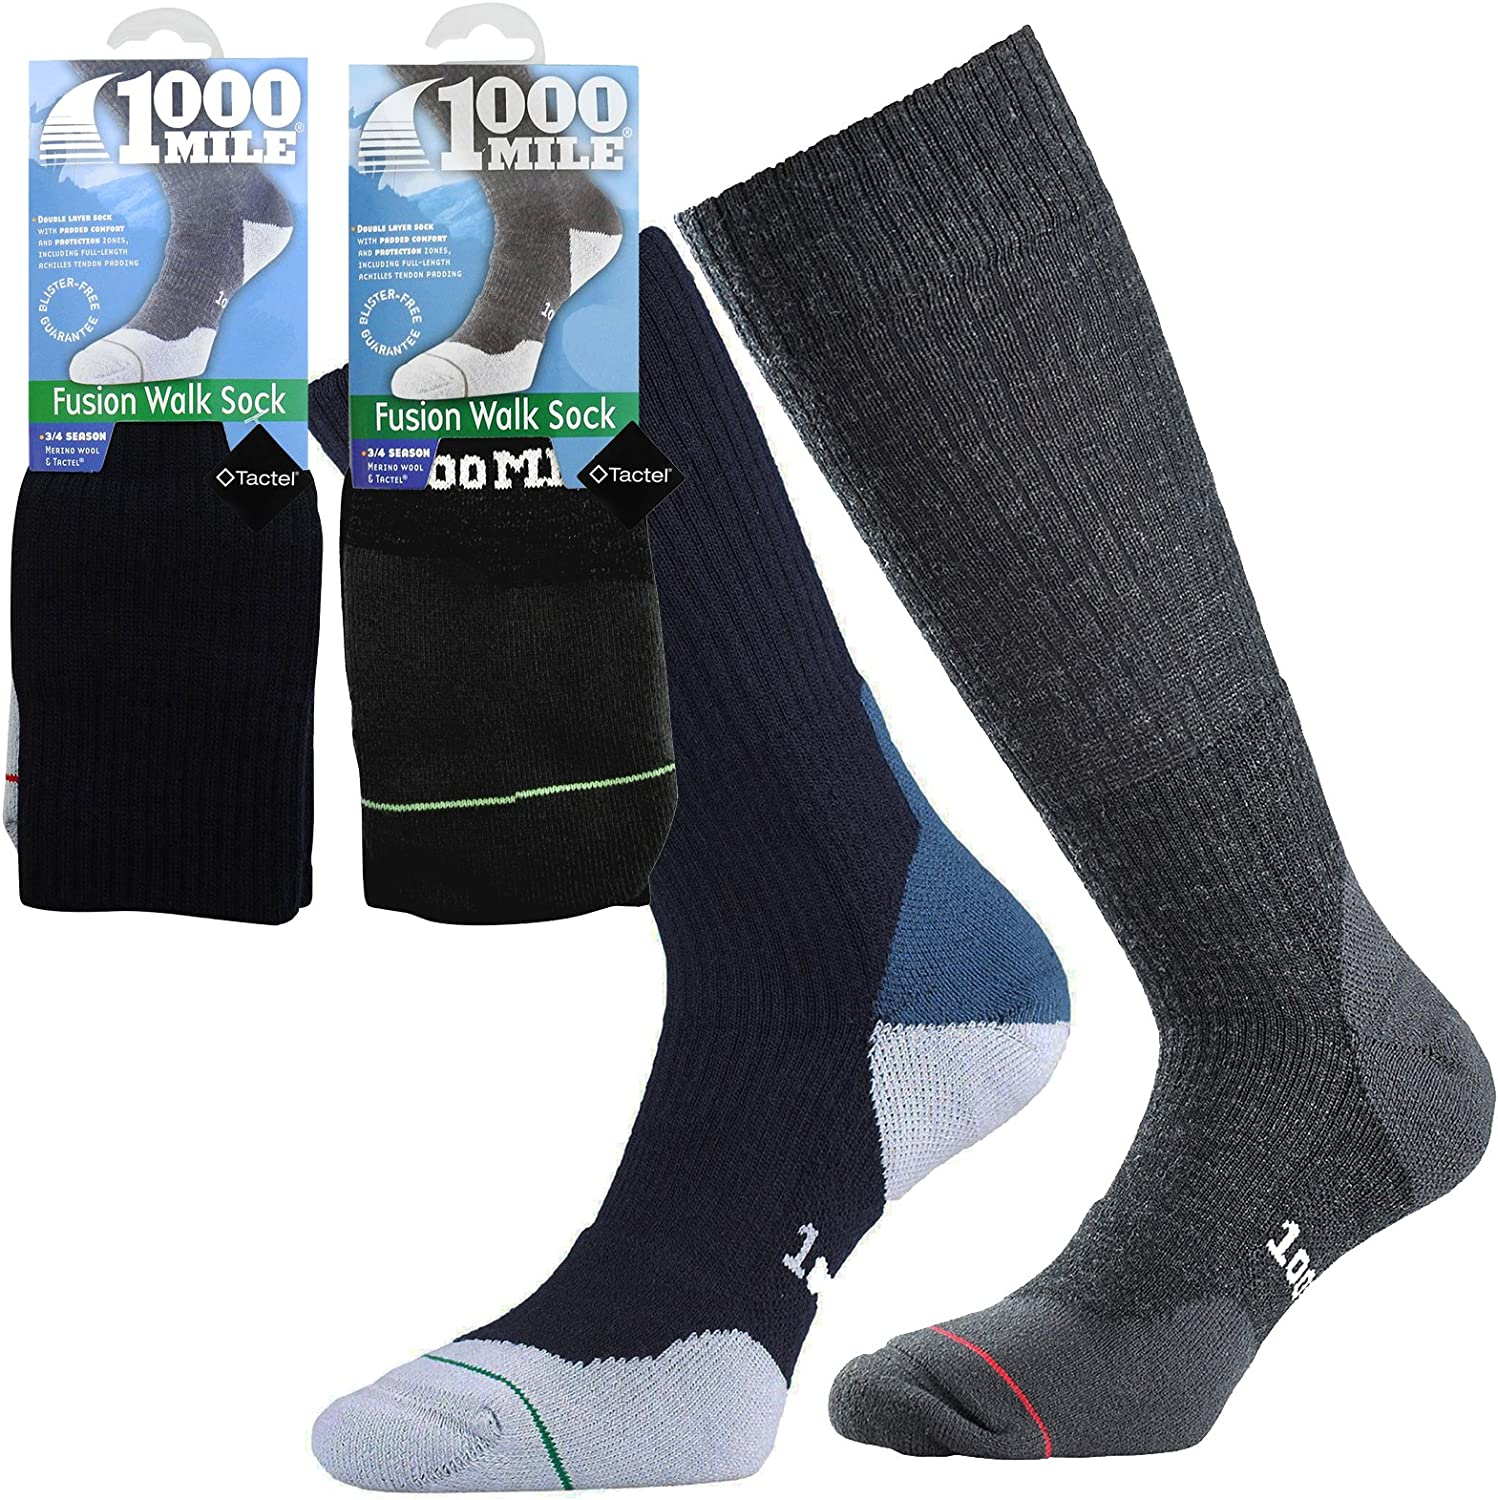 1000 Mile Men/'s Fusion Services Anti-Blister Walking Socks with Achilles Support